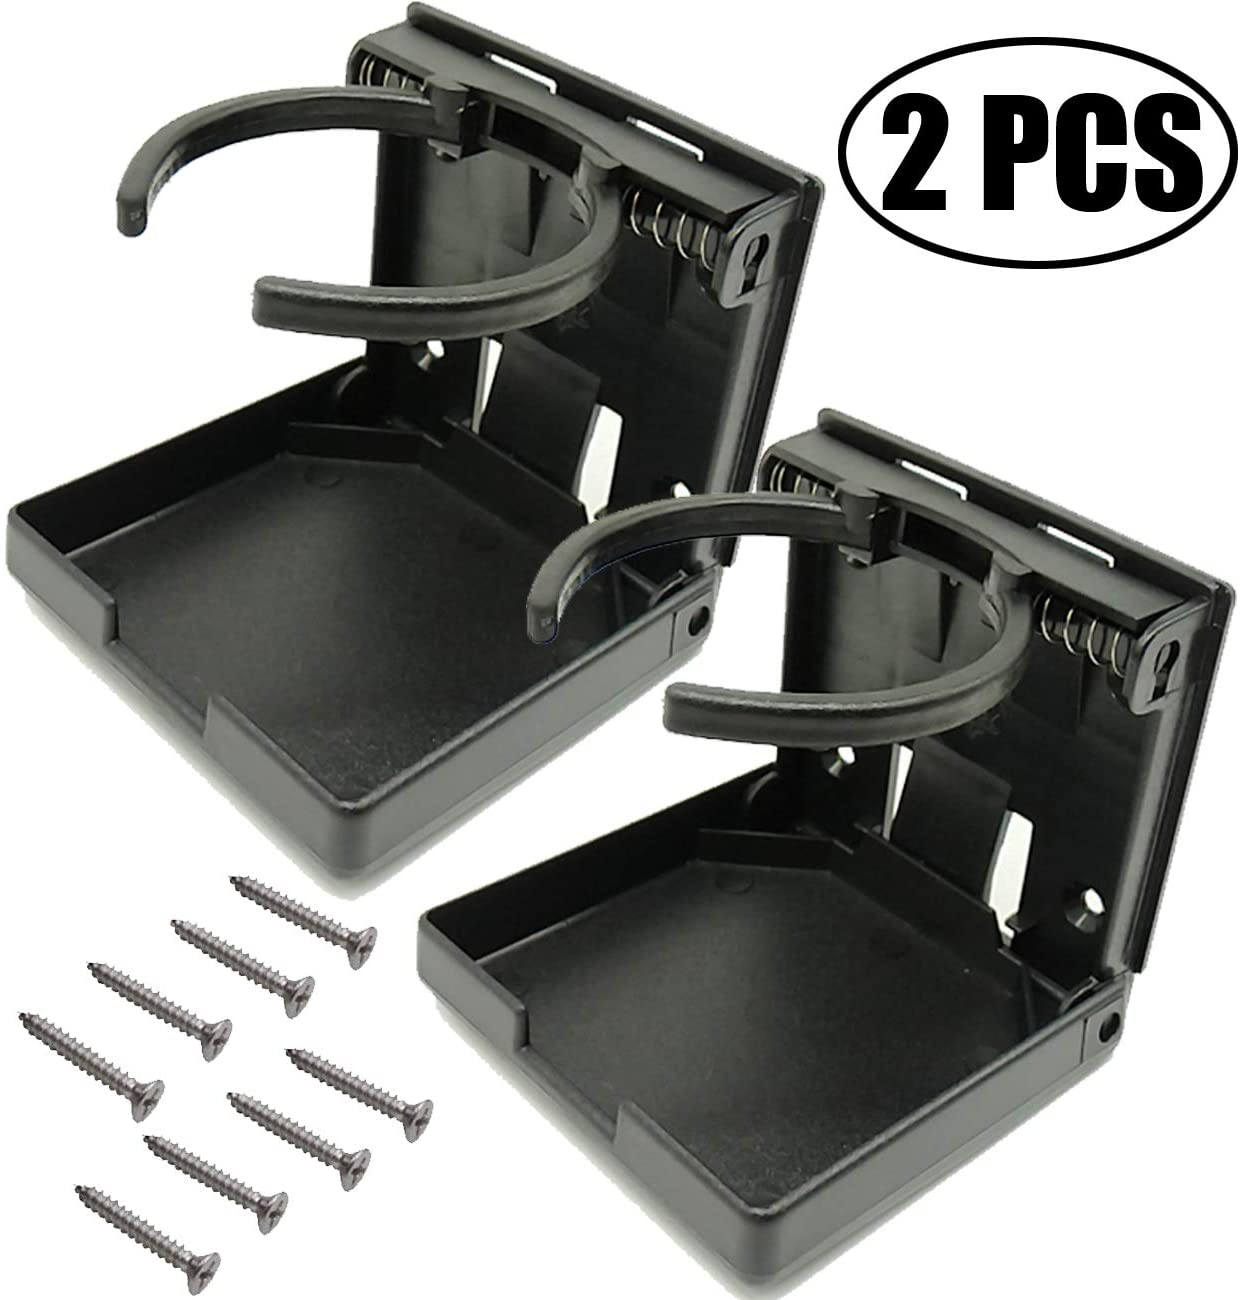 TIHOOD 2PCS Adjustable Folding Drink Holder with Screws/Adjustable Cup Holder for Marine/Boat/Caravan/Car (Black)